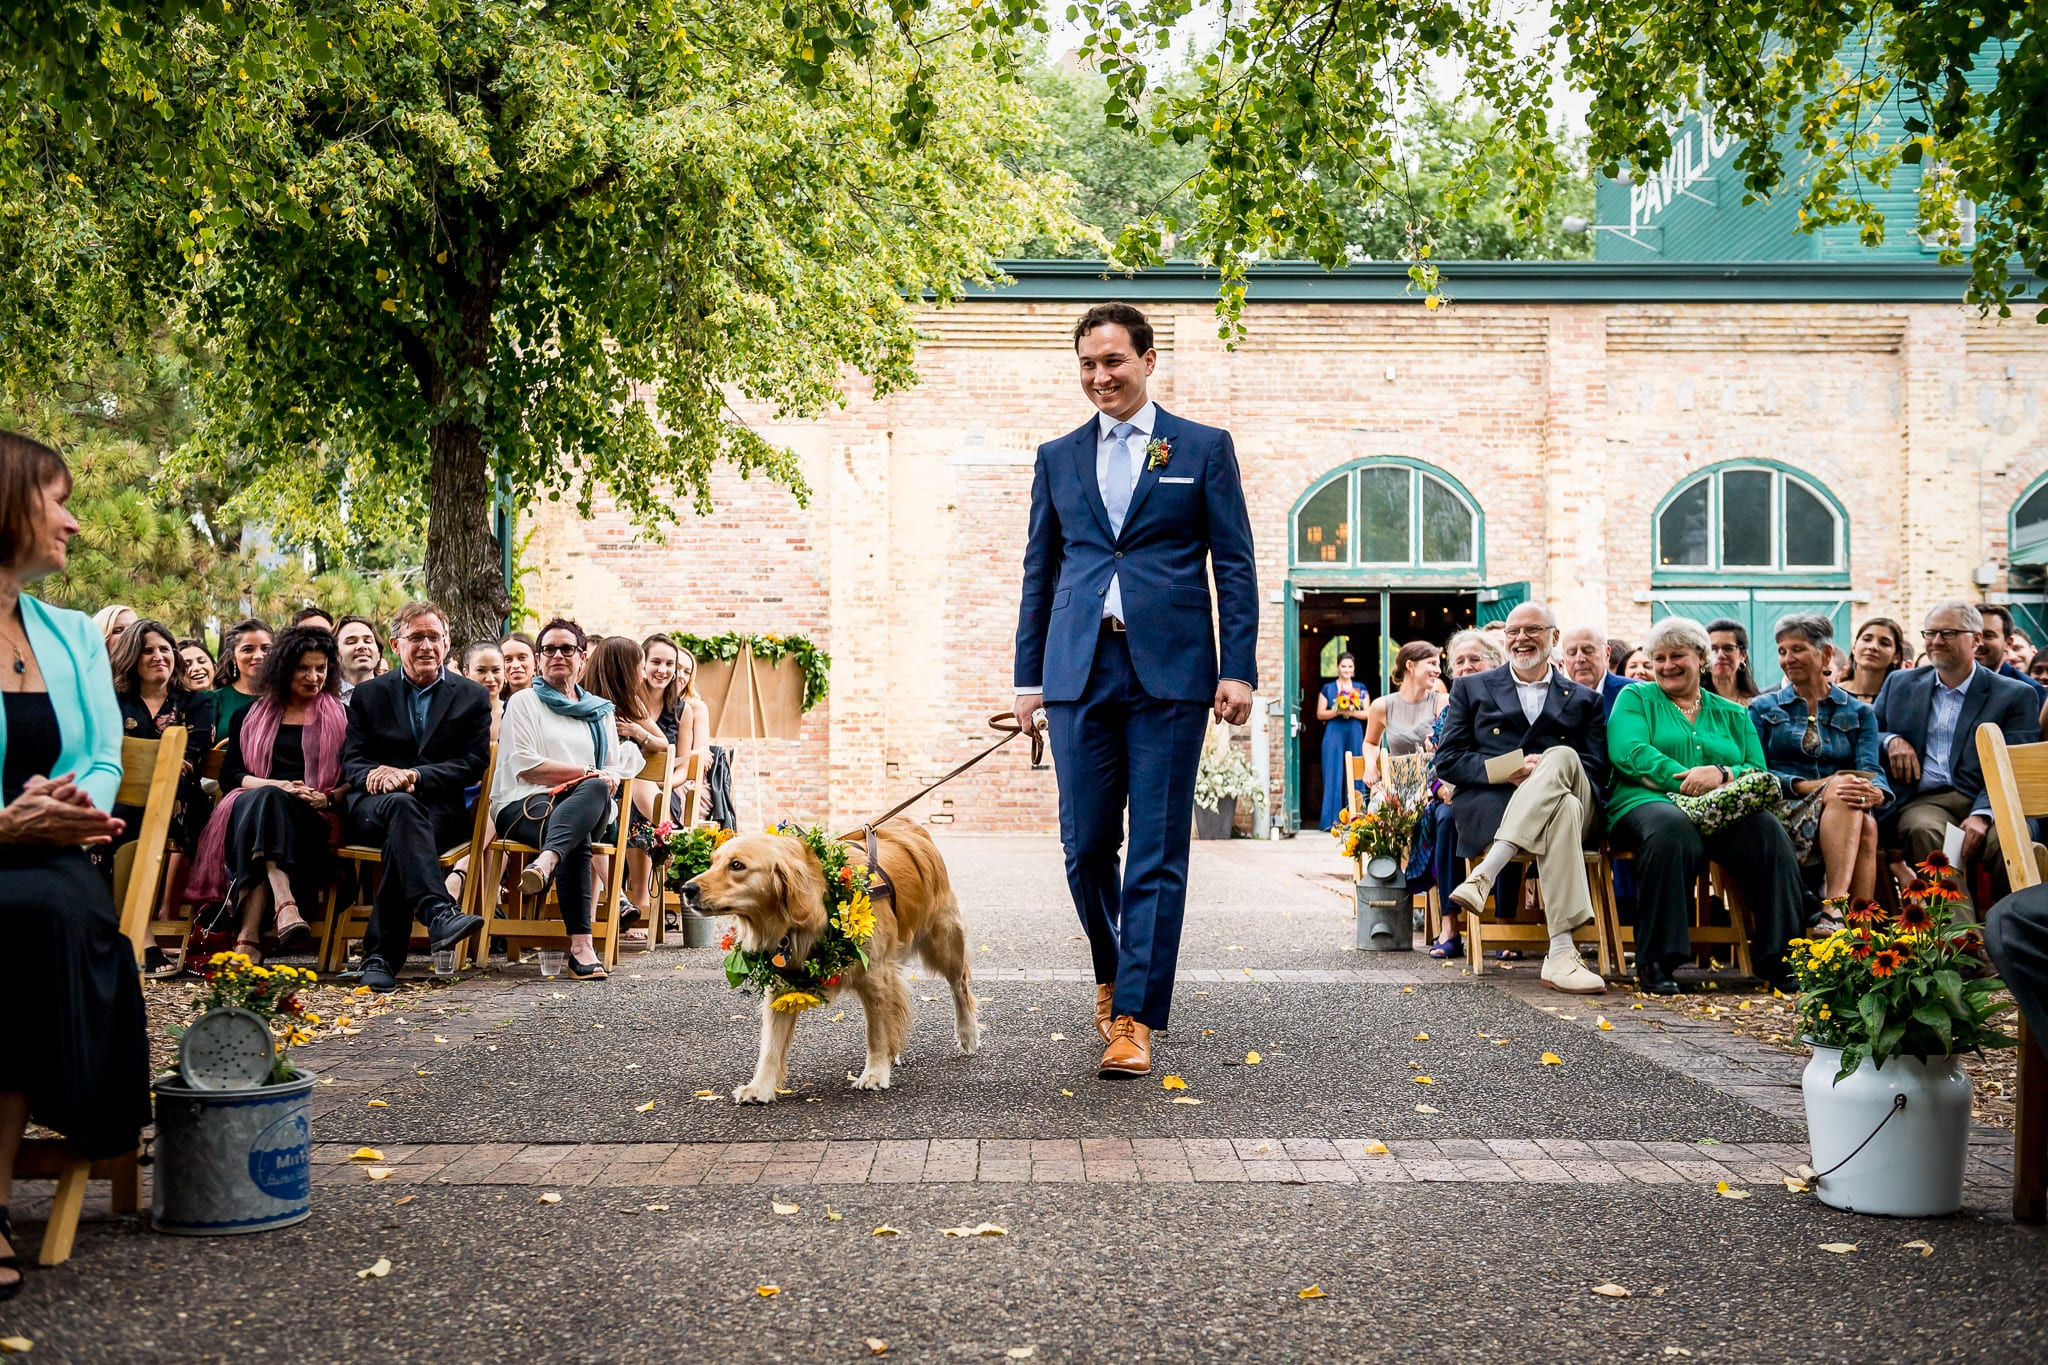 Best man walks the ringer bear, the couples golden retriever, down the isle for a Nicollet Island Pavilion wedding